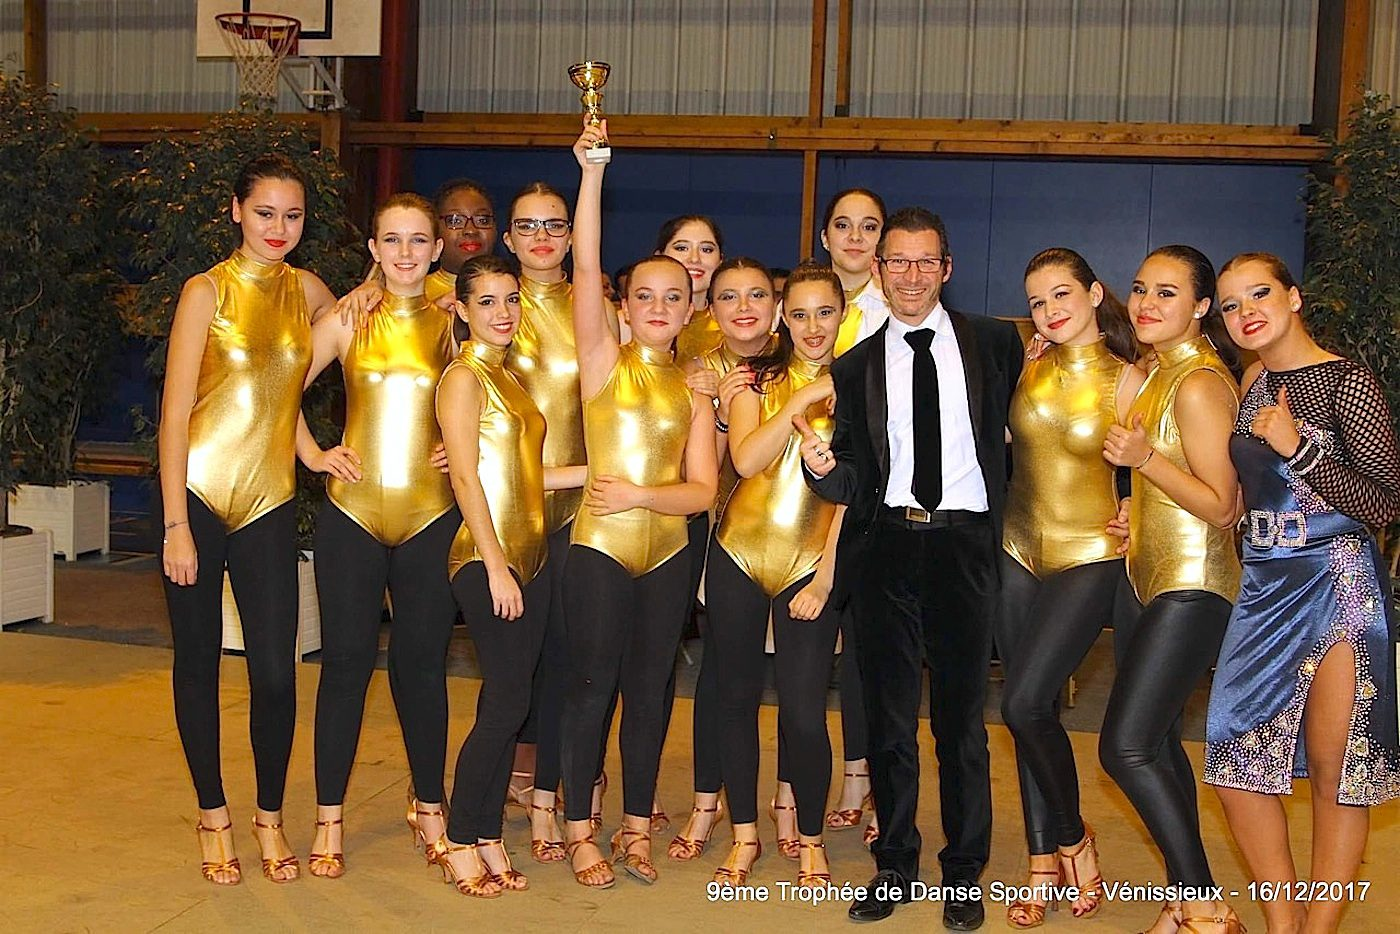 <div align=left>Week-end sportif : les championnats de France de danses latines en vedette</div>